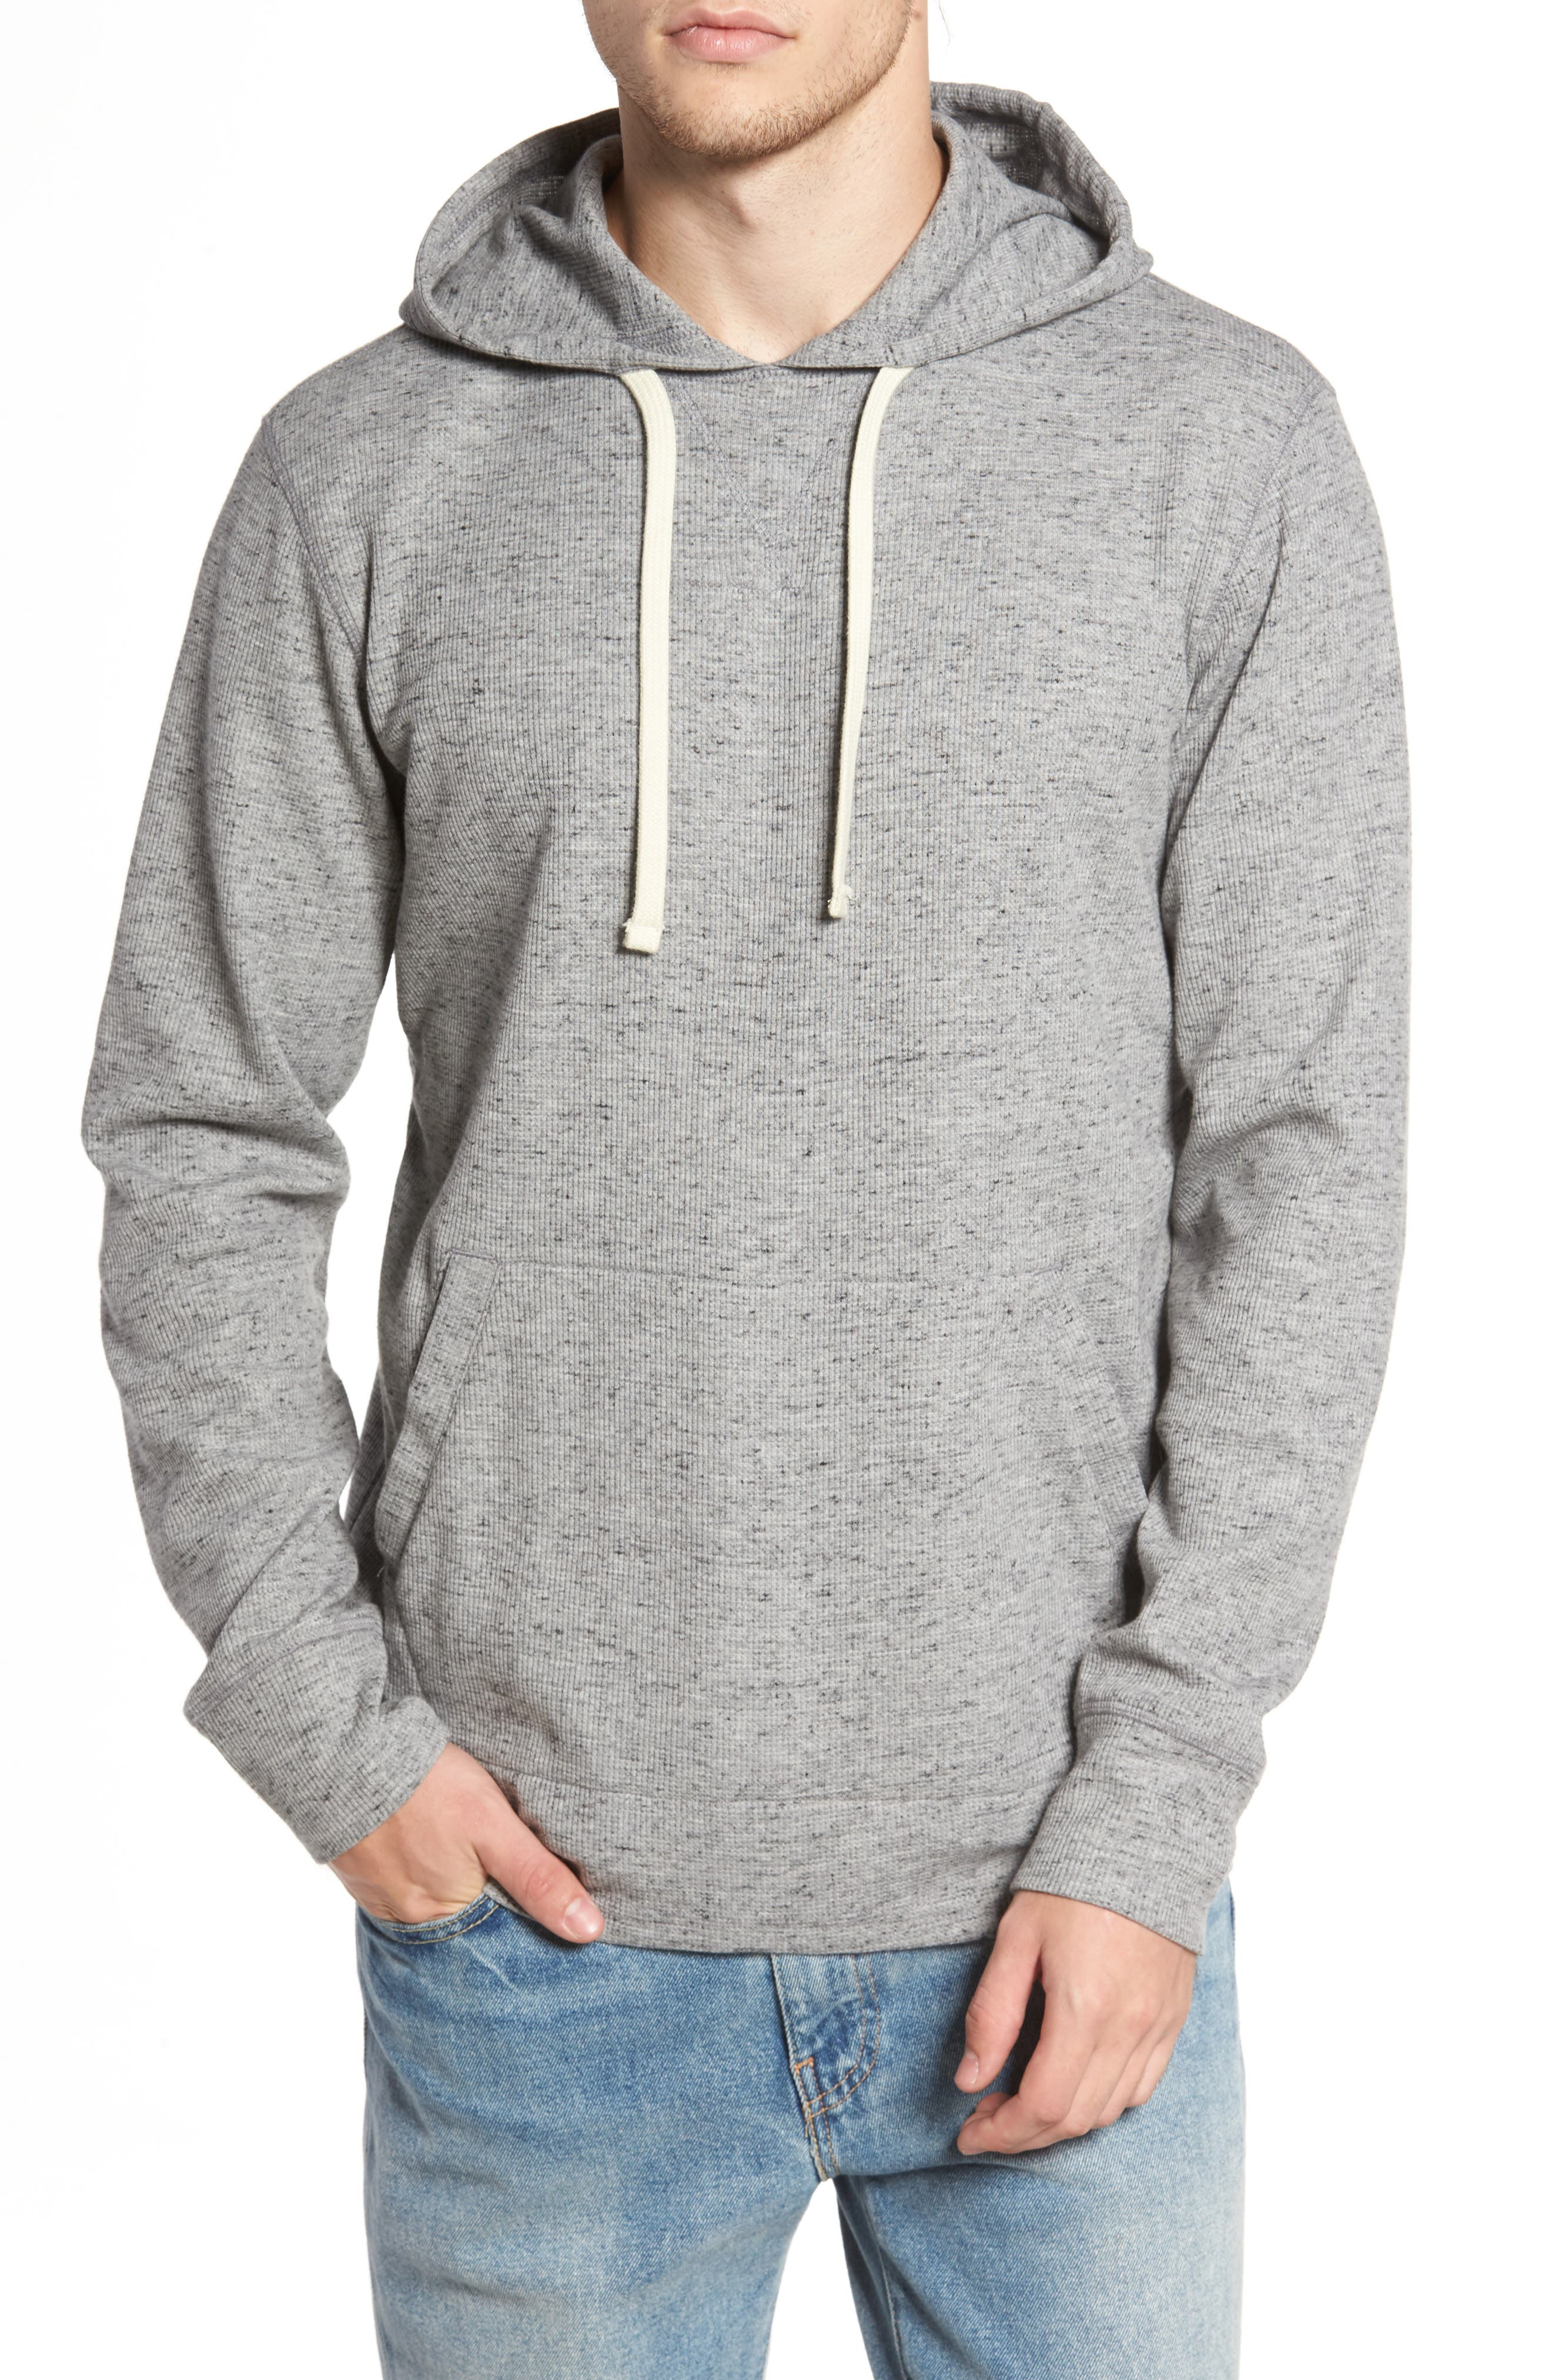 Boldin Thermal Pullover Hoodie,                         Main,                         color, 039